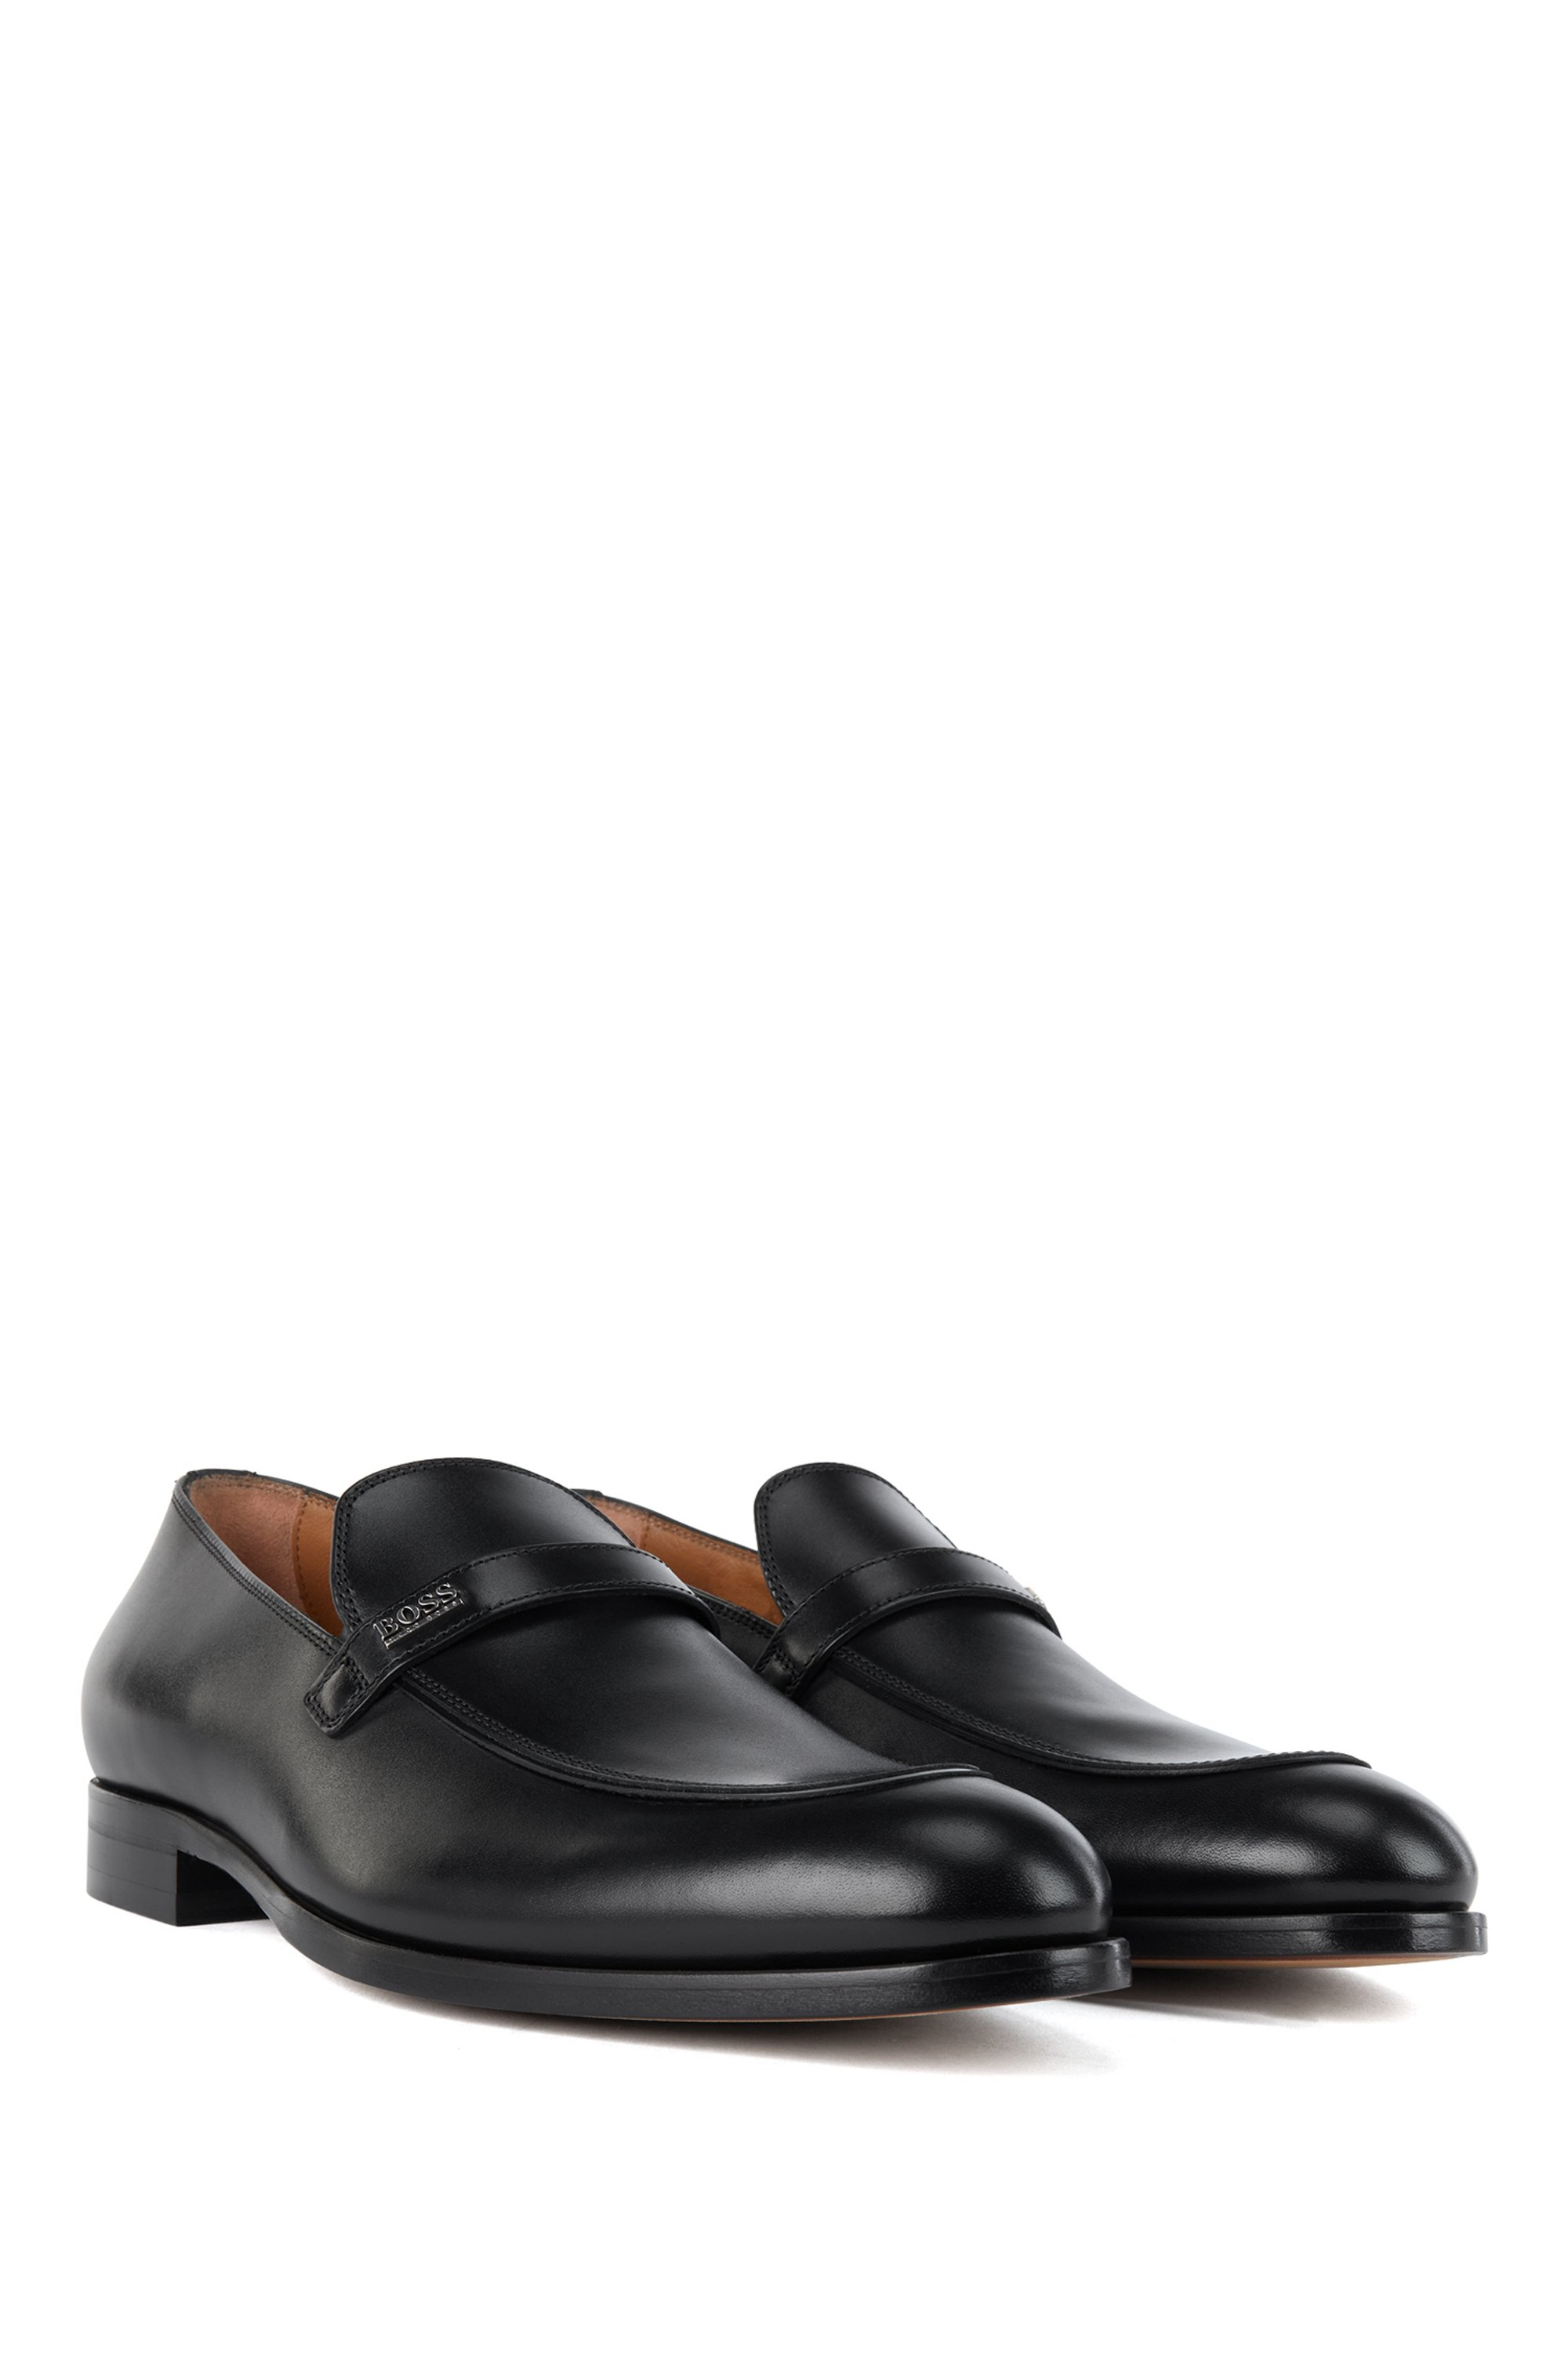 Apron-toe loafers in polished calf leather